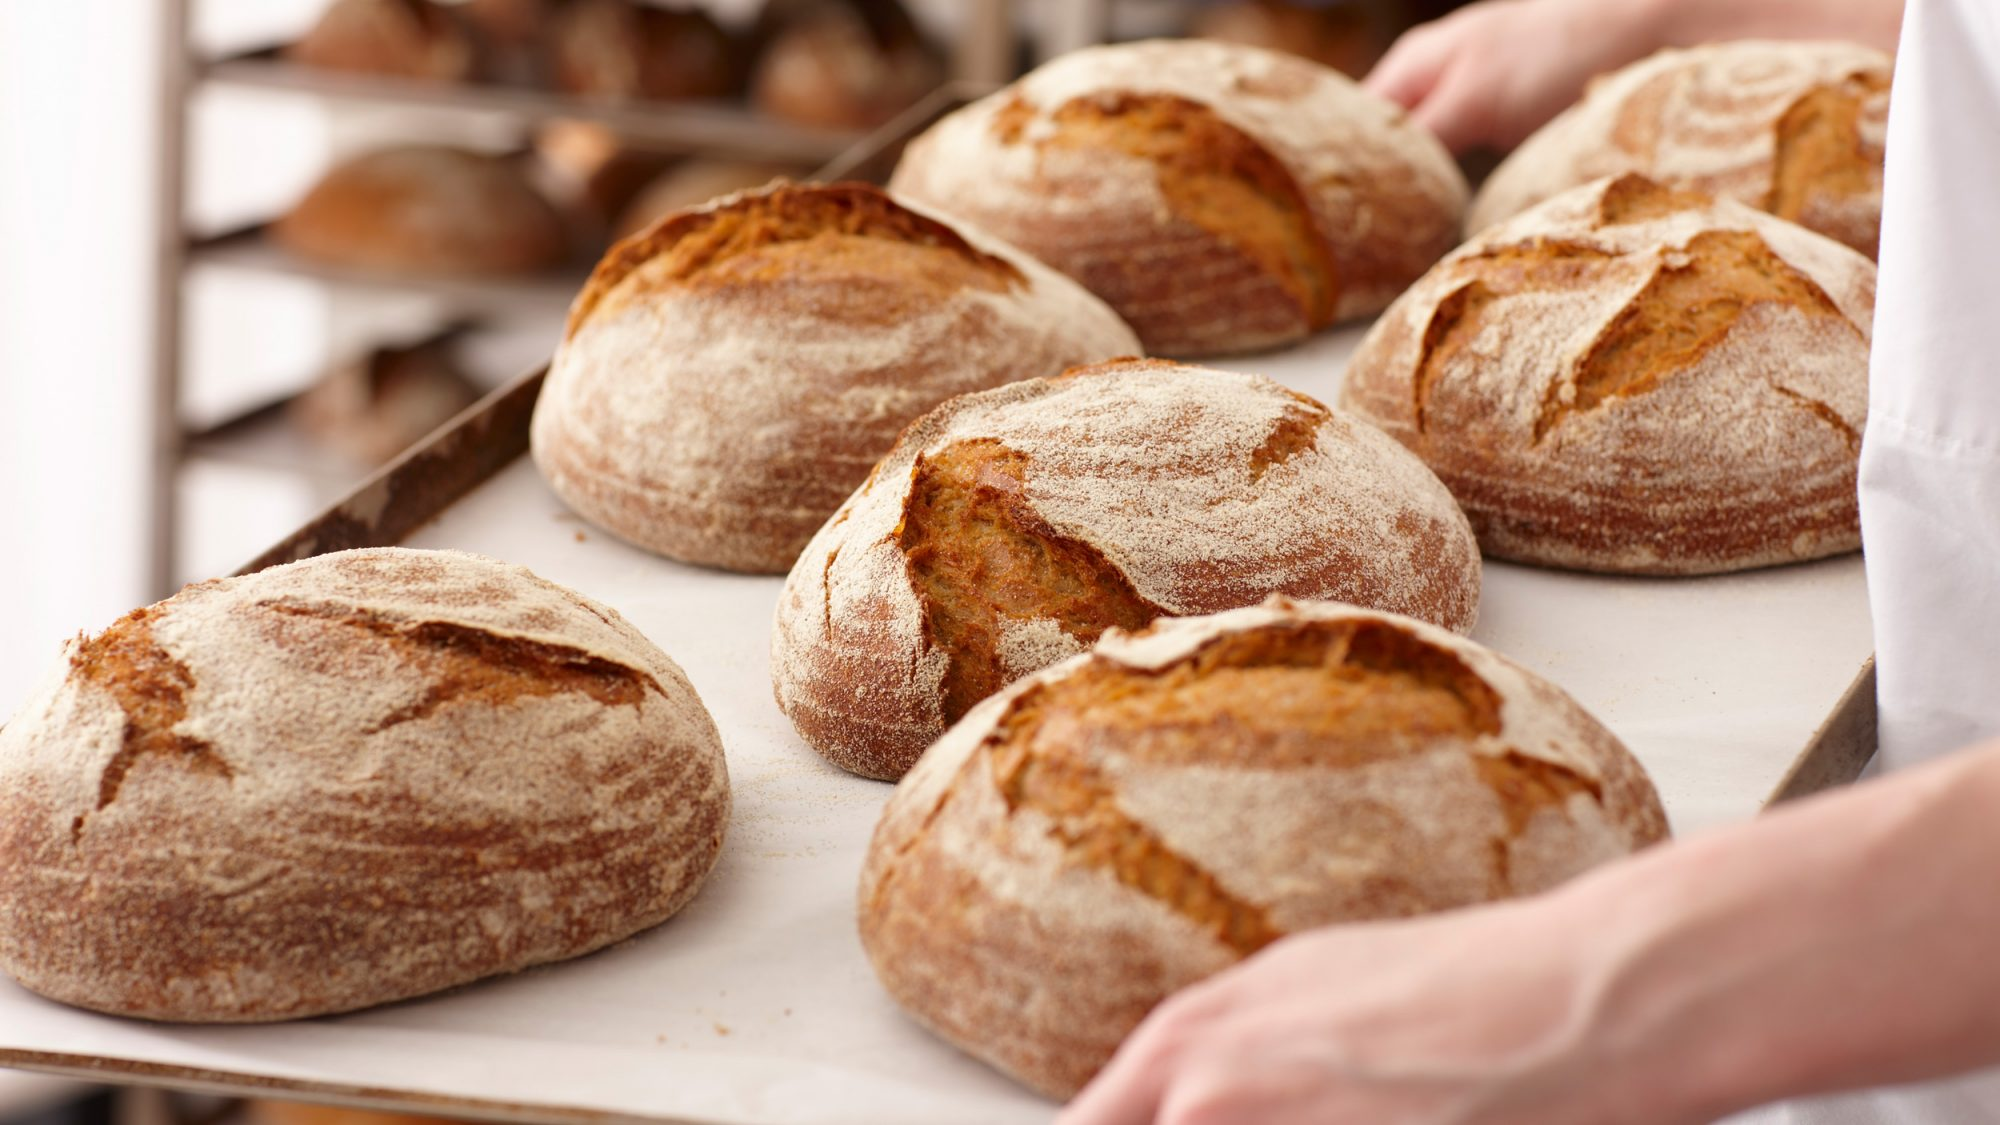 Scientists Claim to Have Created Gluten-Free Bread That Tastes Just Like the Real Thing